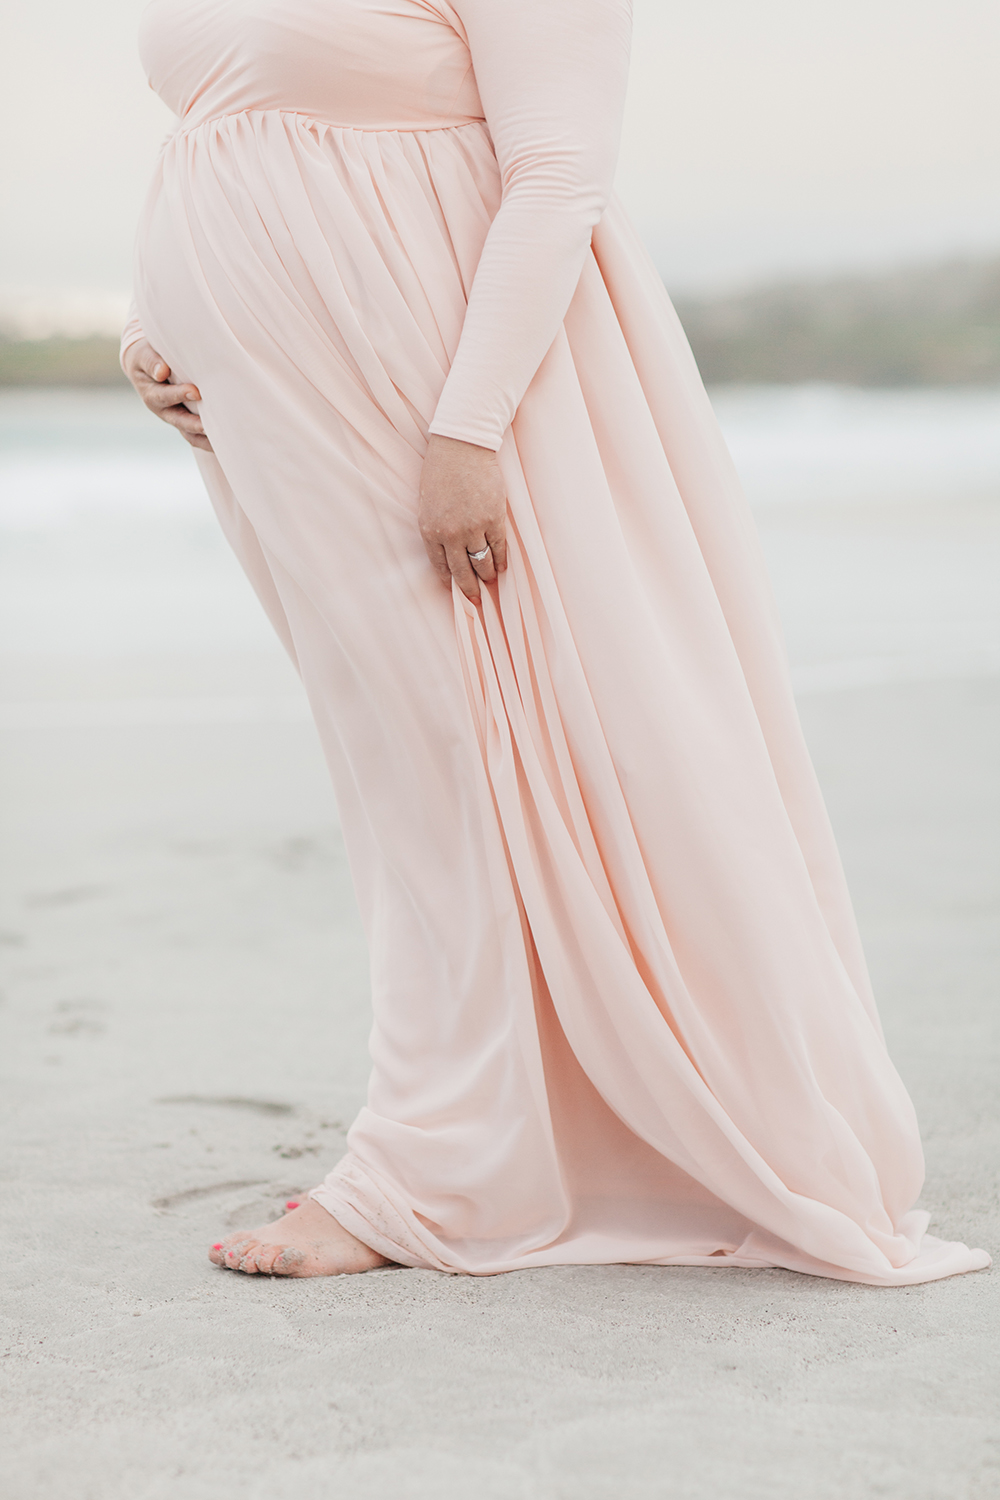 veronica-fausto-monterey-bay-maternity-session-08